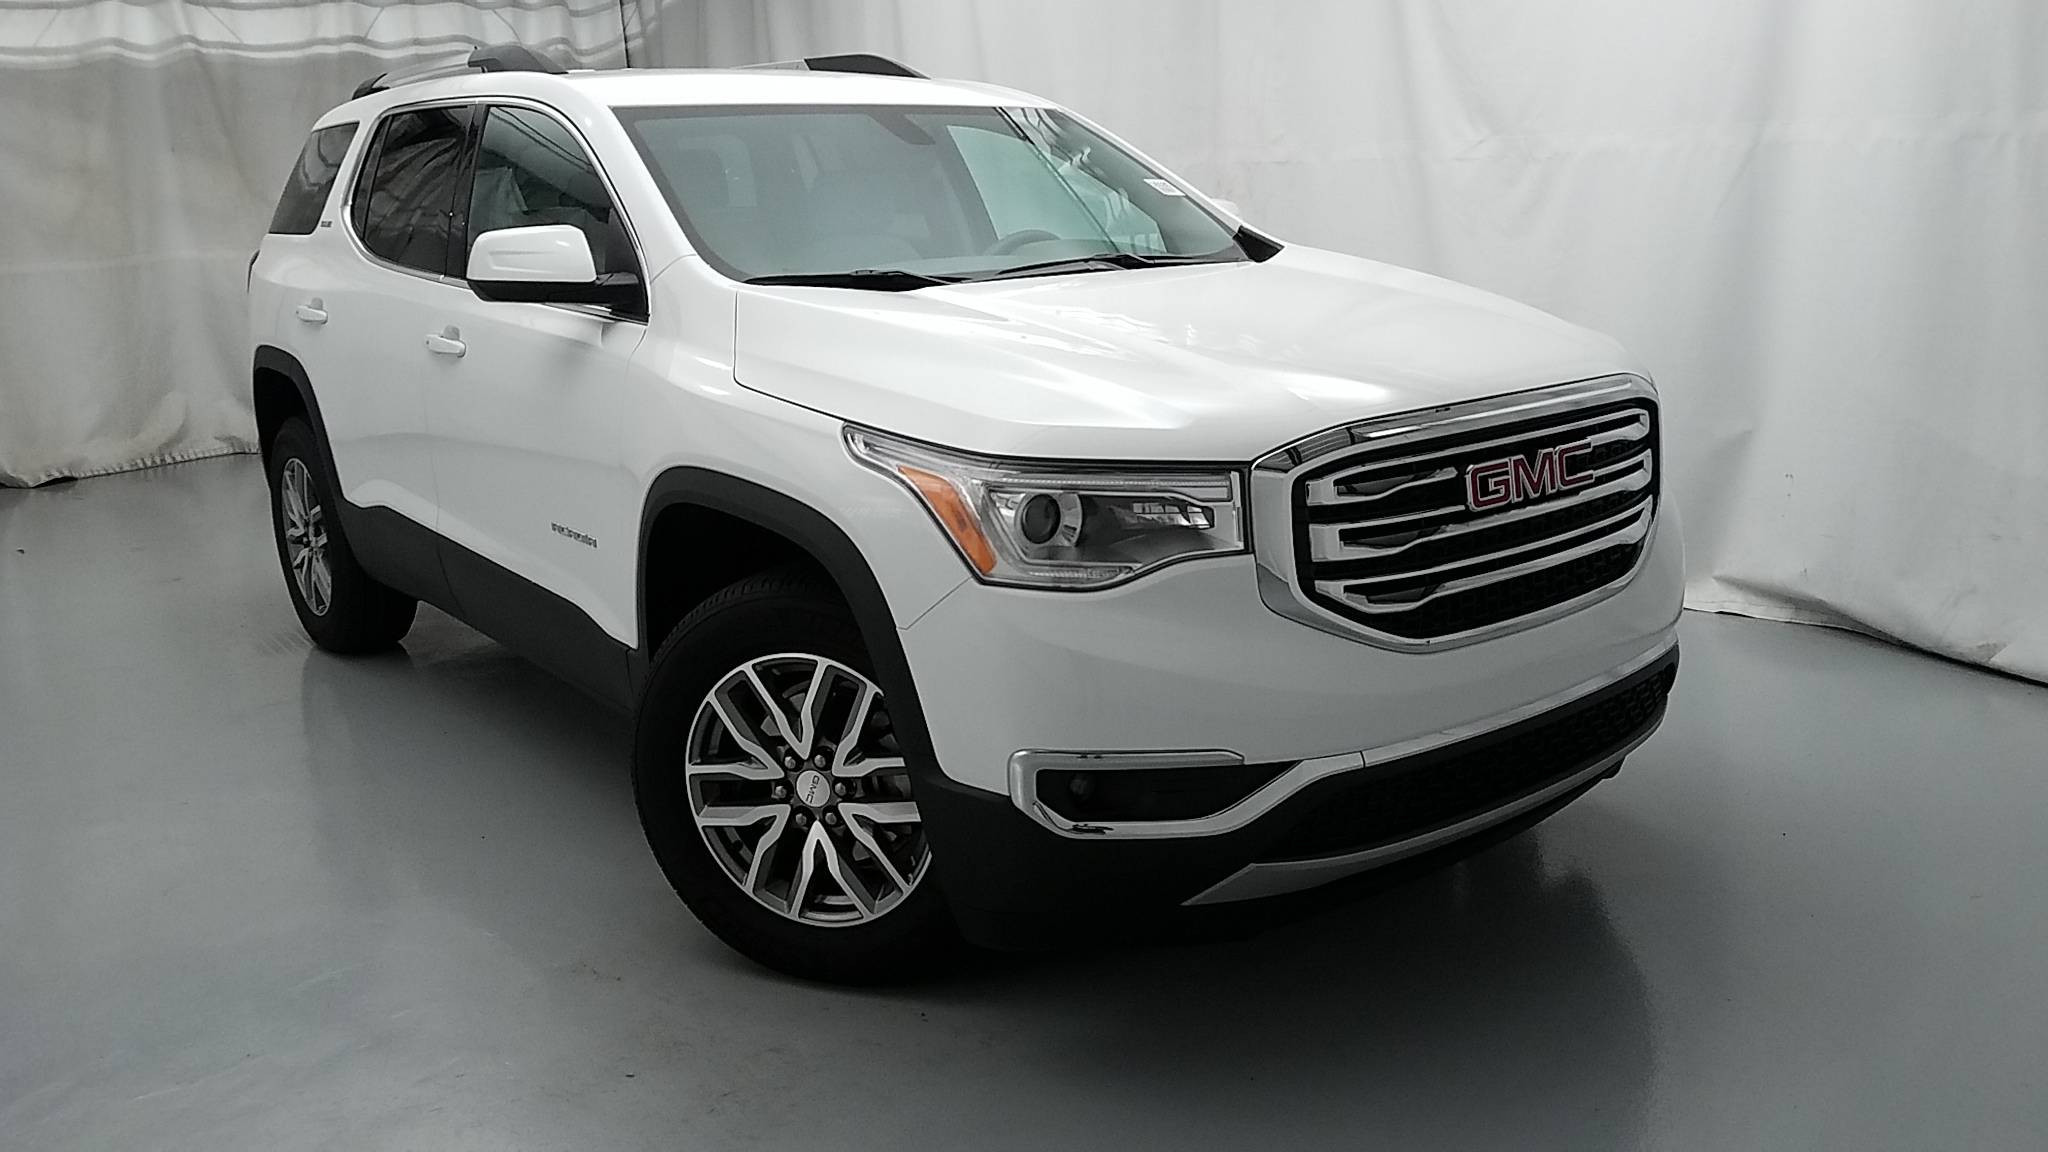 Gmc Acadia For Sale Near Me >> used cars on craigslist baton rouge | used cars